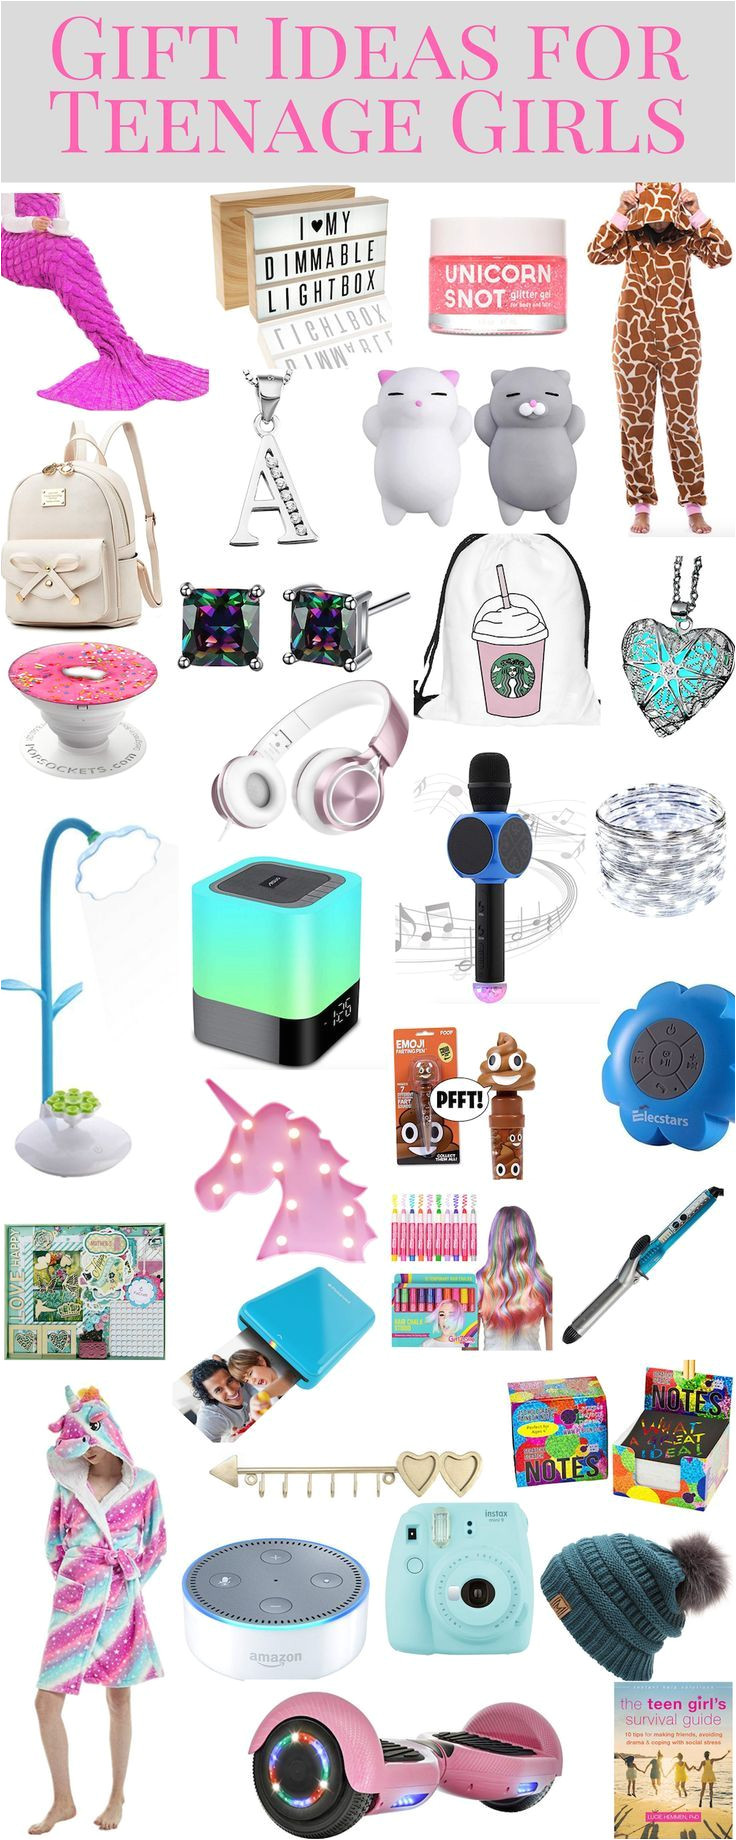 Gift Ideas for 13 Year Old Daughter 2019 257 Best Great Gifts for Girls Images In 2019 Jewelry Accessories